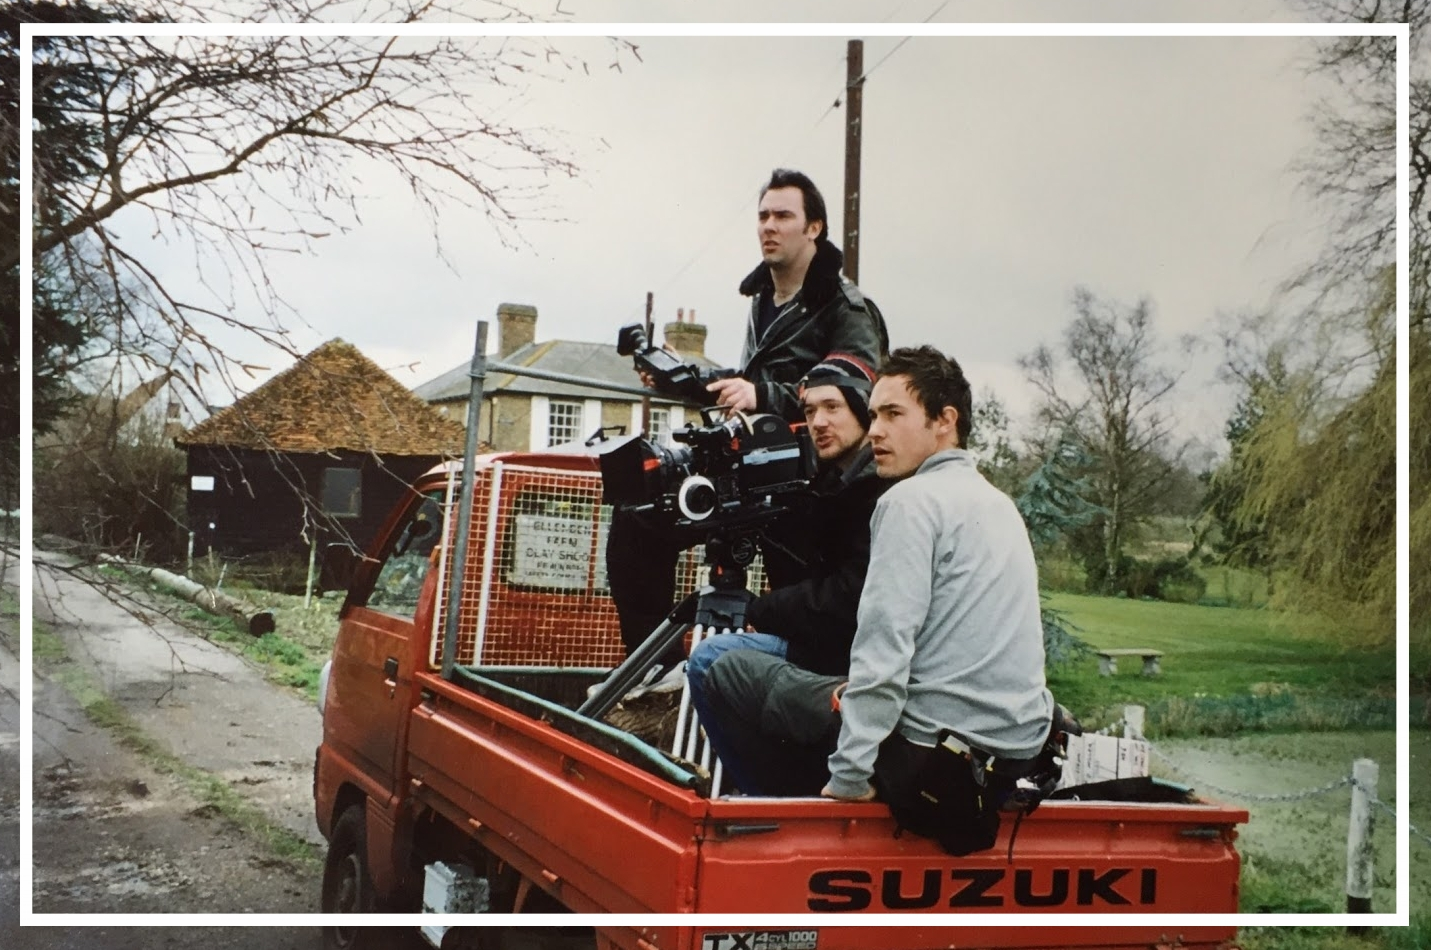 And then - 15 years later I set up Motion Picture House (mphfilm) to make moving image. This picture is my first short film in 1999 and I'm on the back of a truck with Dave and Dan shooting a short film called makeamovie.can.The film was shown at the Cannes Film Festival in 1999.